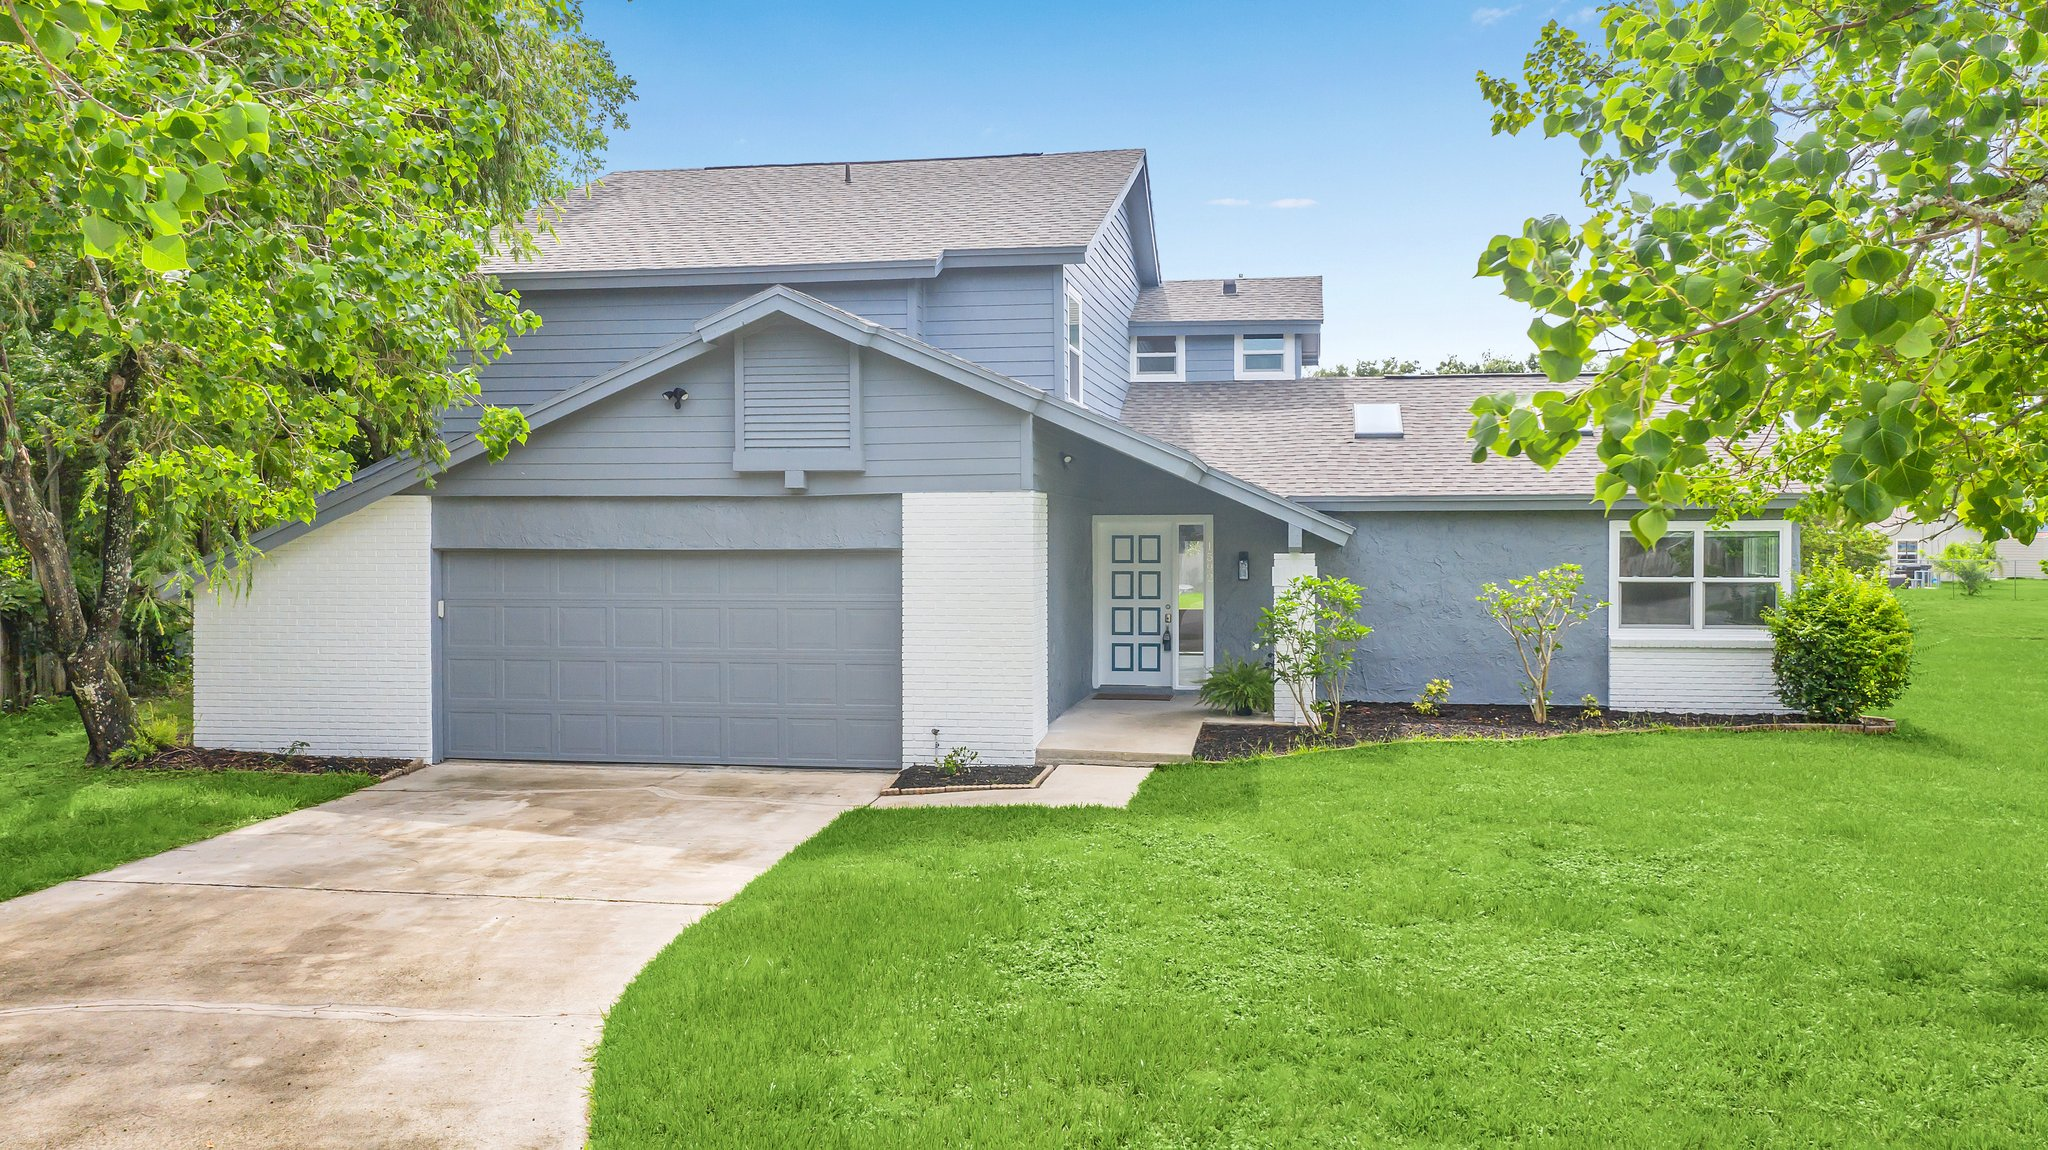 This one is MOVE-IN READY with QUICK CLOSE OPPTY!